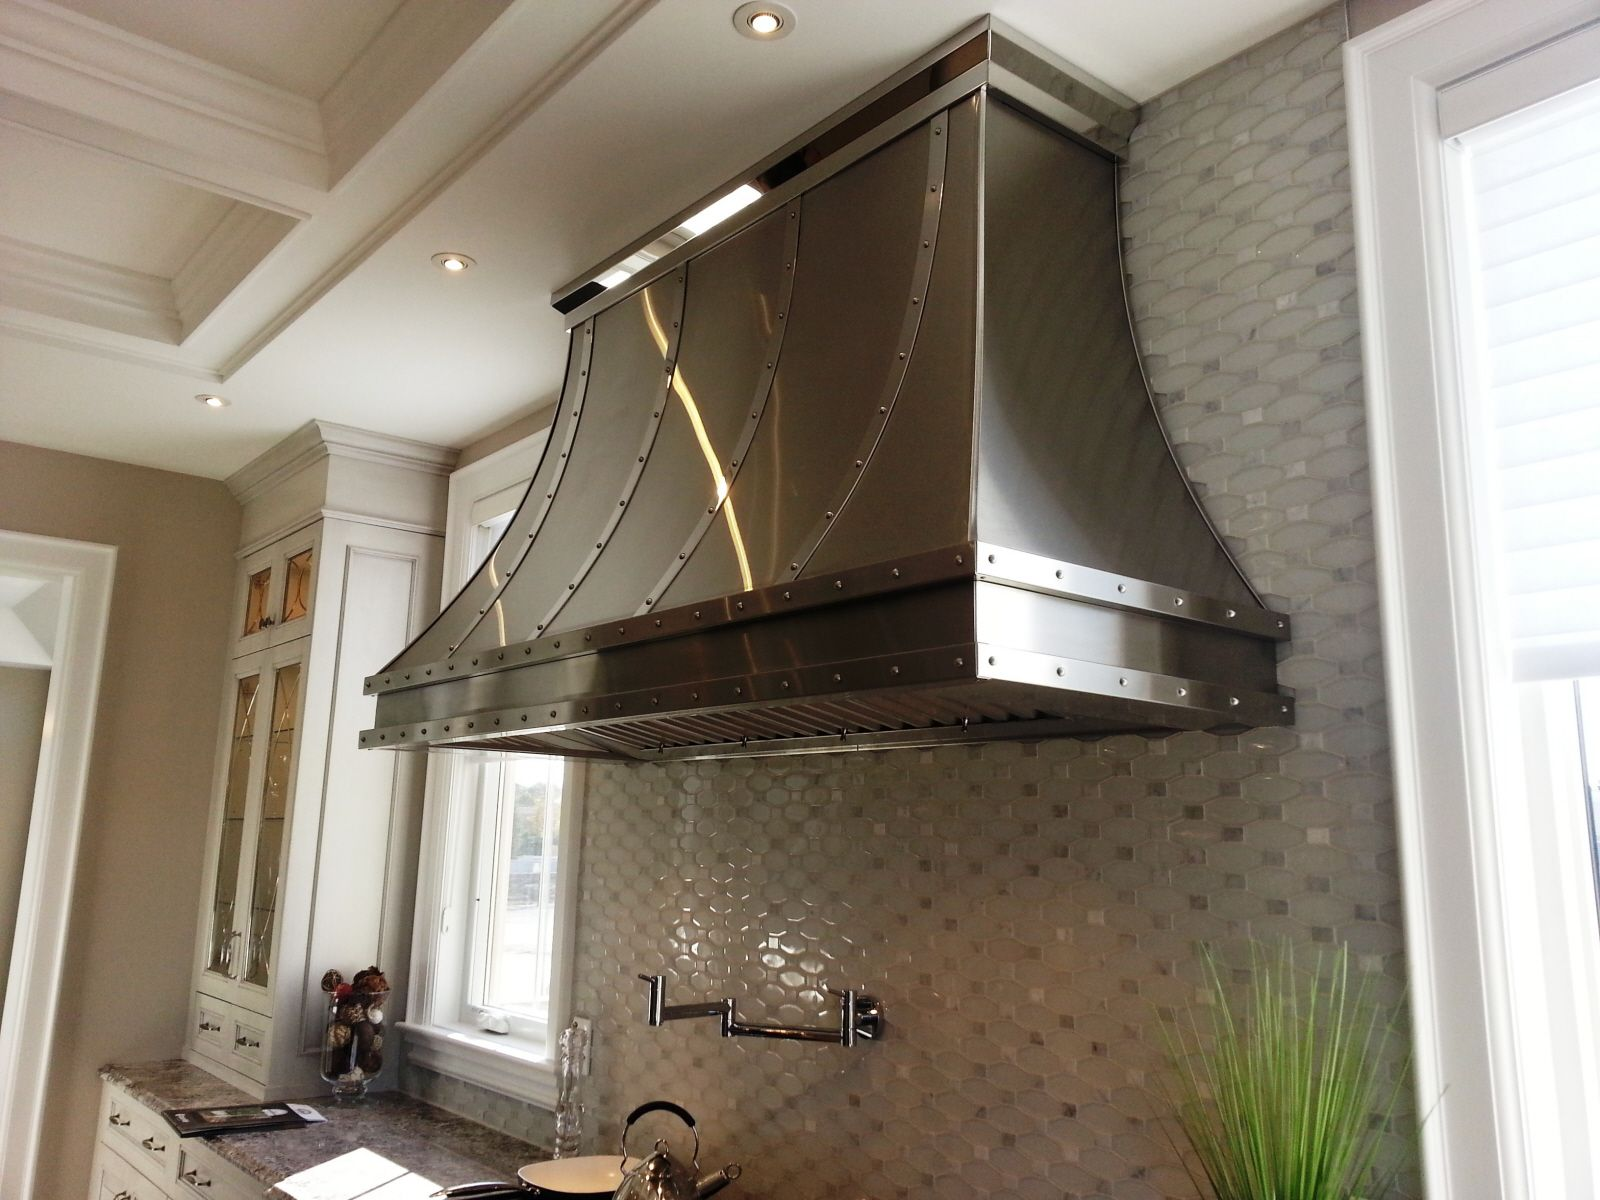 Hand Crafted Stainless Steel Range Hood S1 By Ck